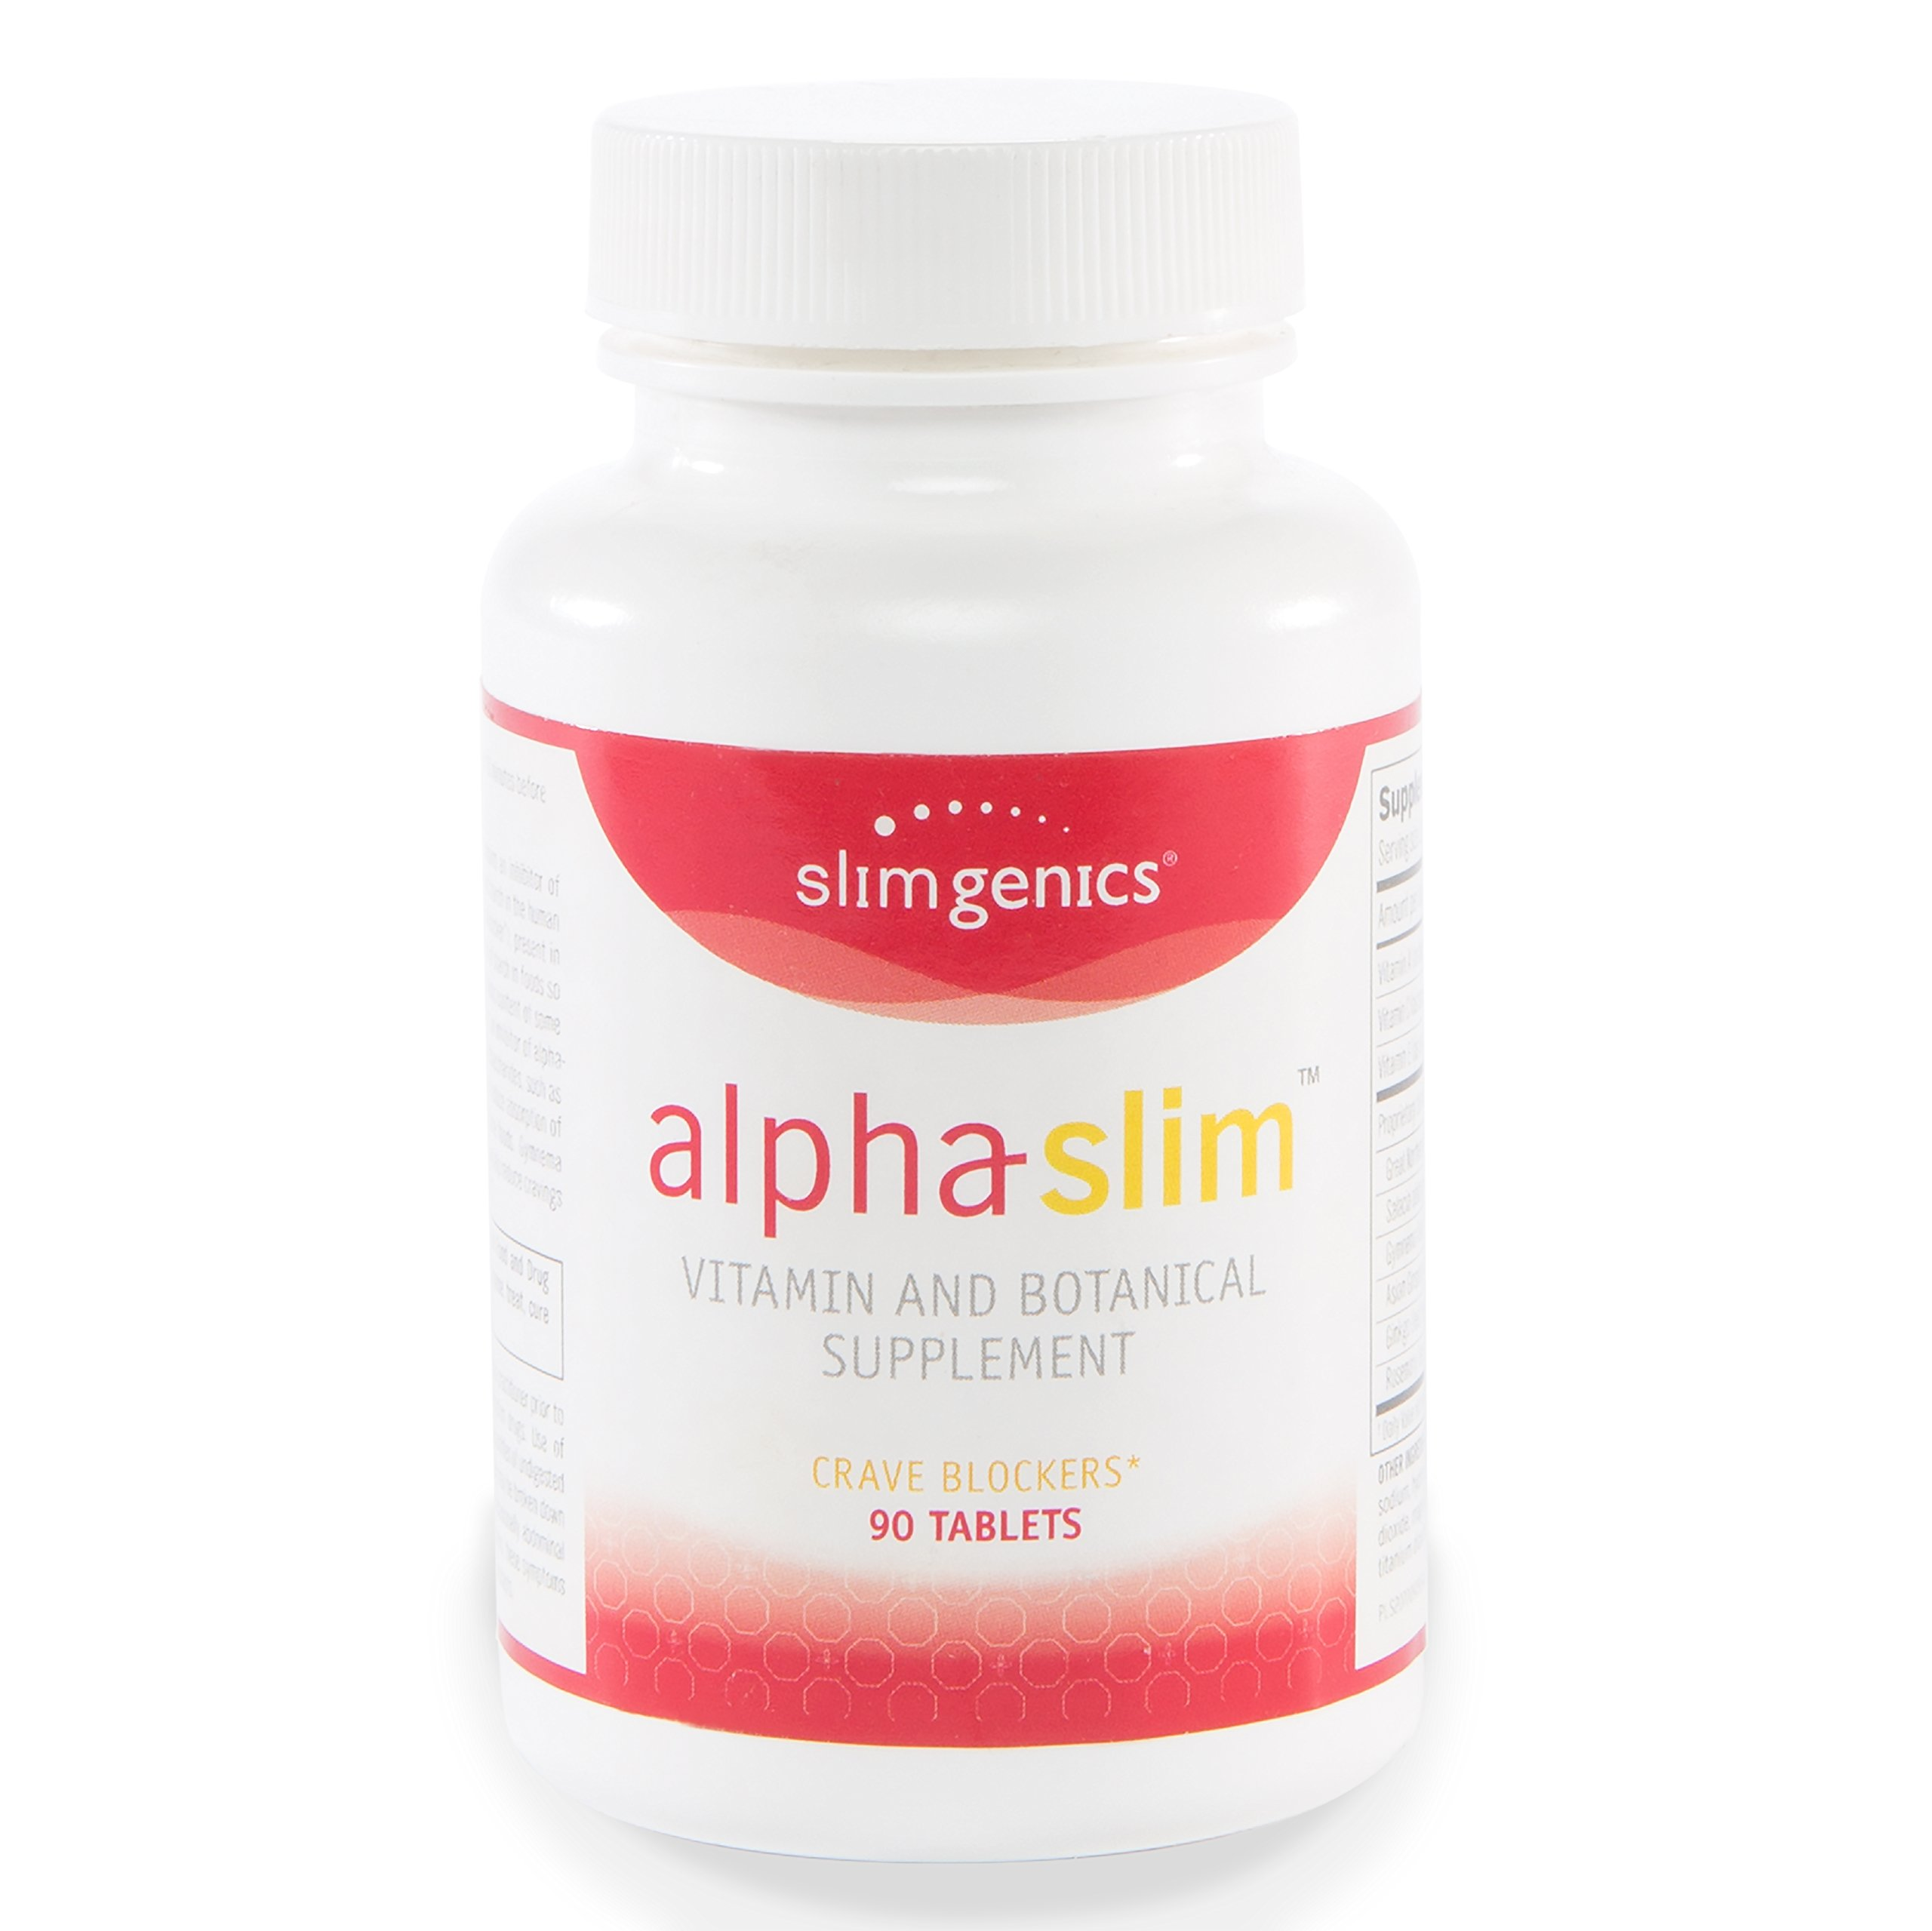 SlimGenics Alpha-Slim TM   Carb Blocker, Block Up to 300 Calories Per Meal - Reduce Cravings, Increase Fat Burning, Includes White Kidney Bean Extract - Promotes Healthy Weight Loss (90 Count) by SlimGenics